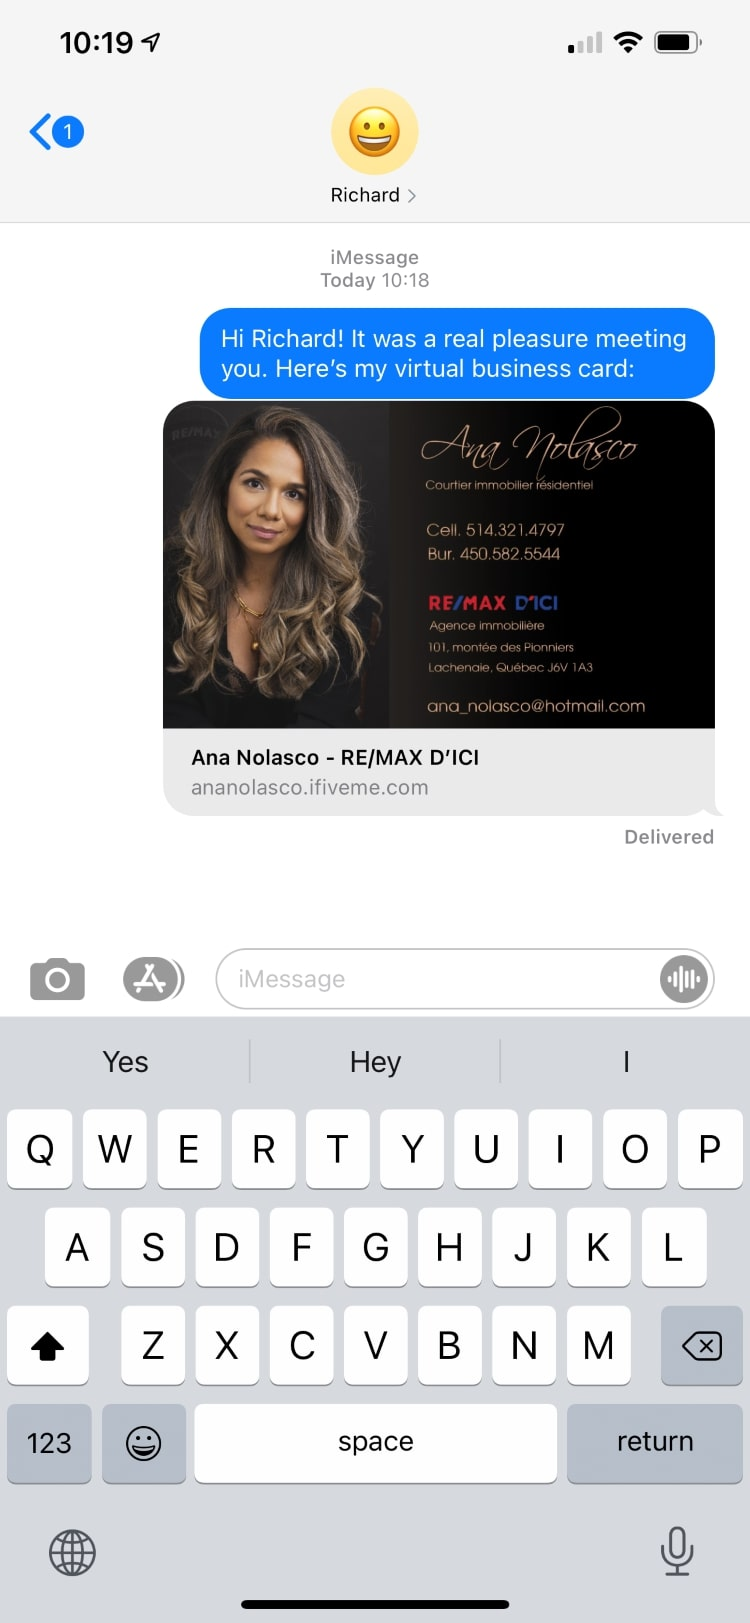 SMS screenshot showing how to share contact information